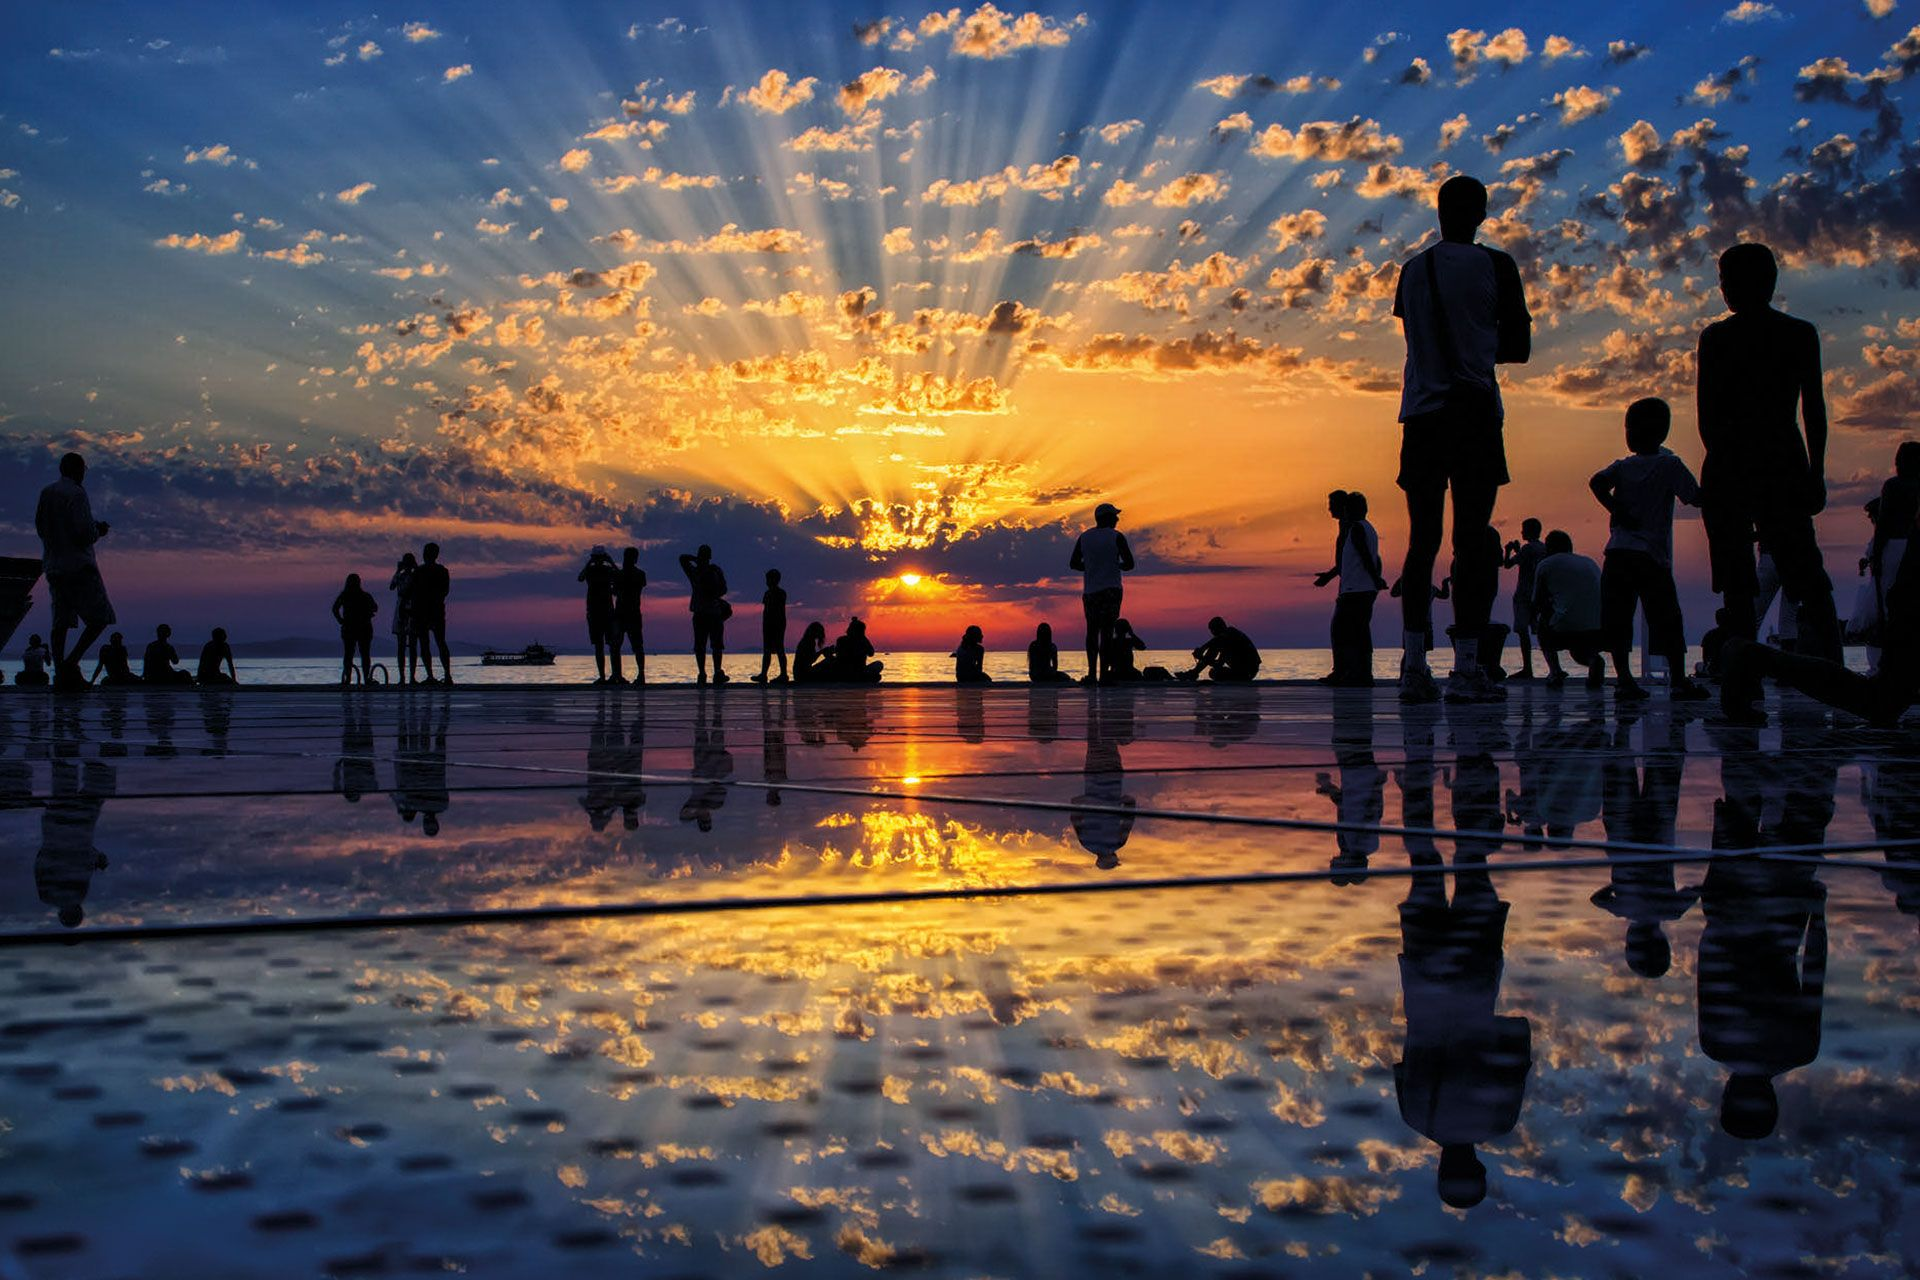 See What Alfred Hitchcock Meant By The Most Beautiful Sunset Zadar Croatia Tourism Zadar Karlovac